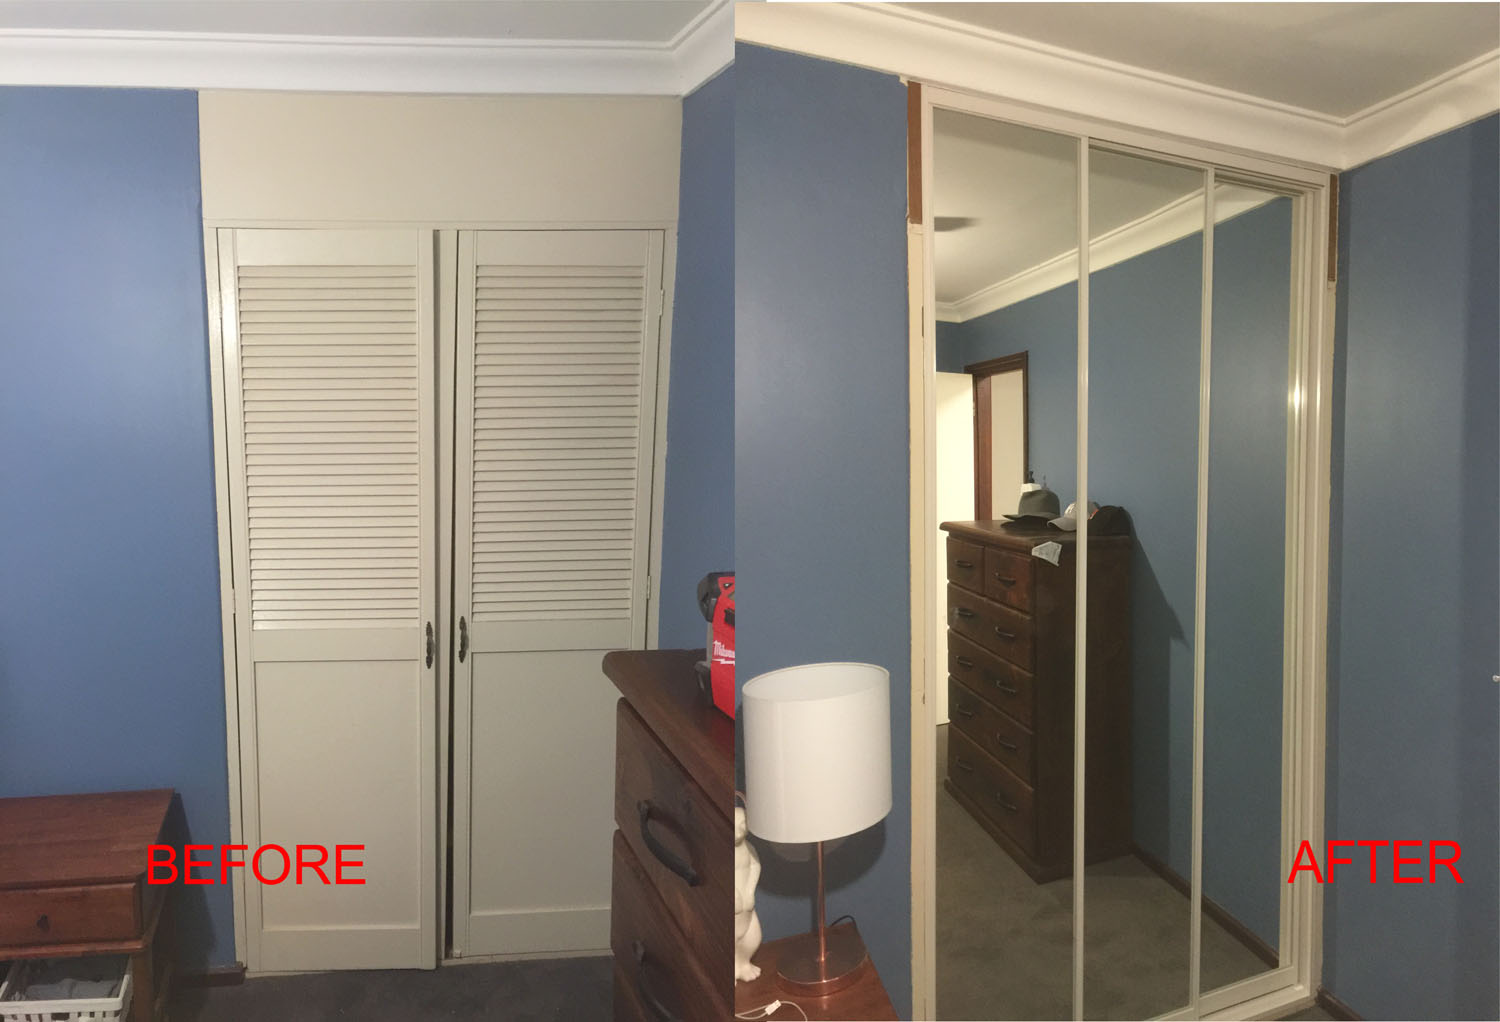 Before & After Photos